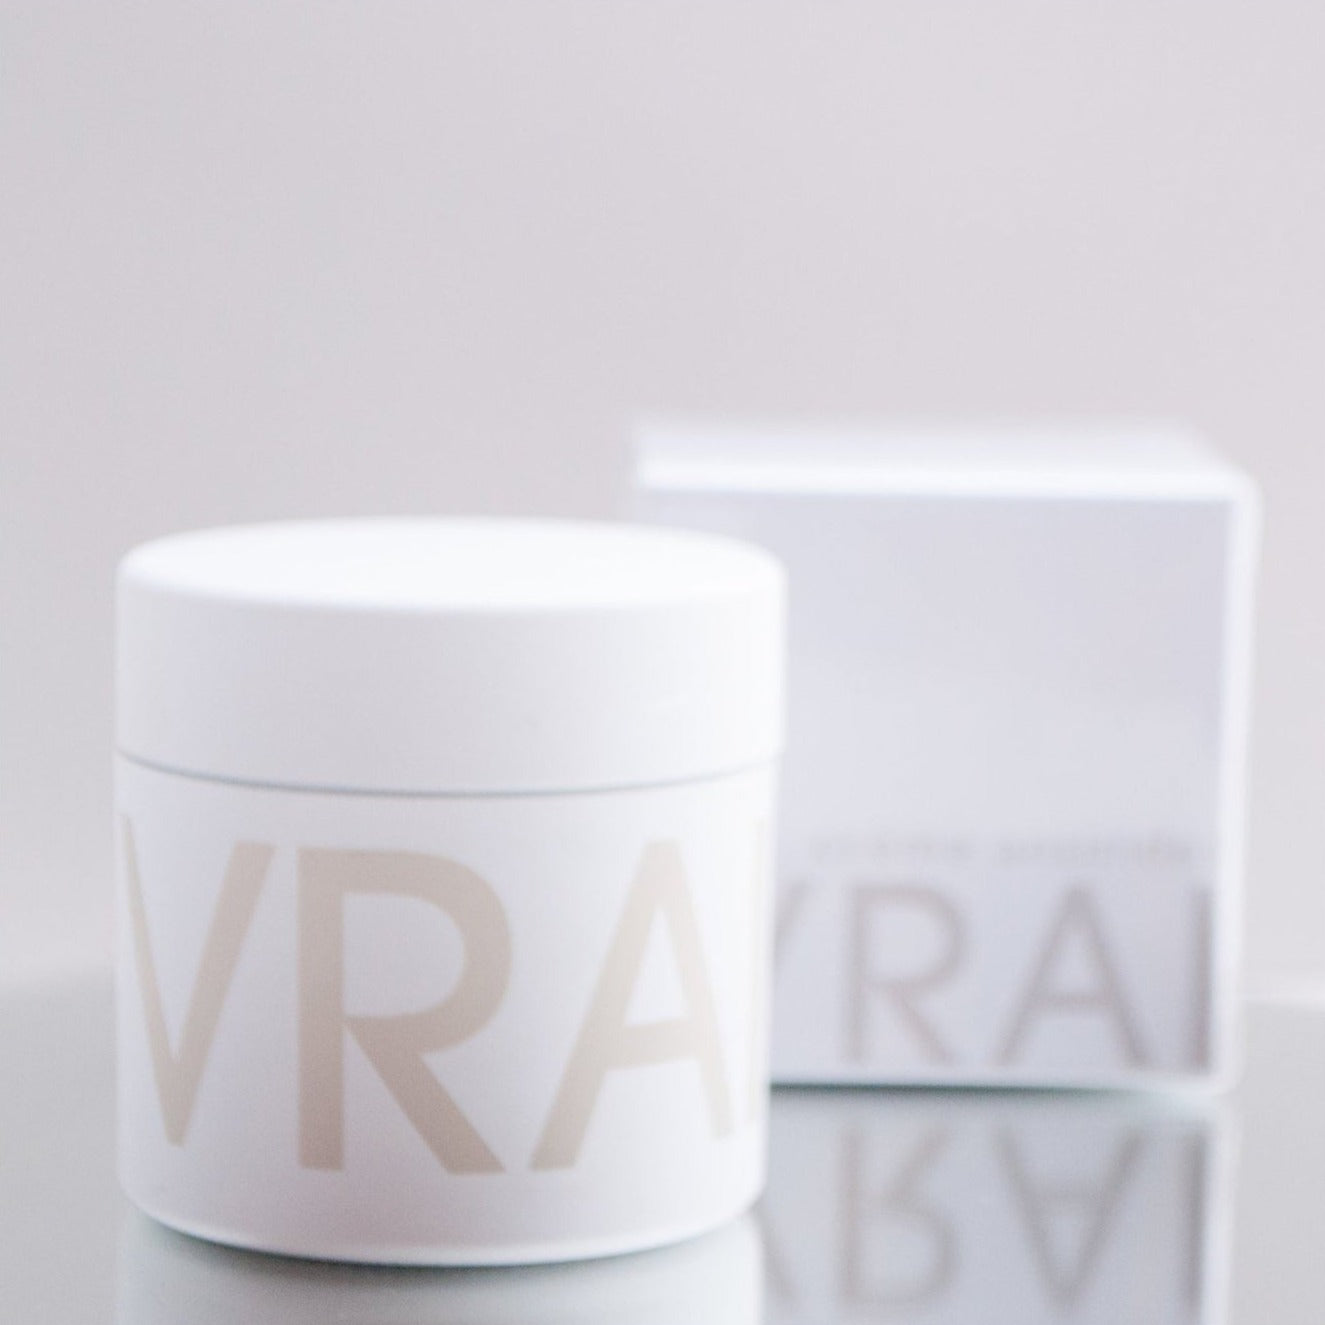 Fragonard VRAI Body Cream